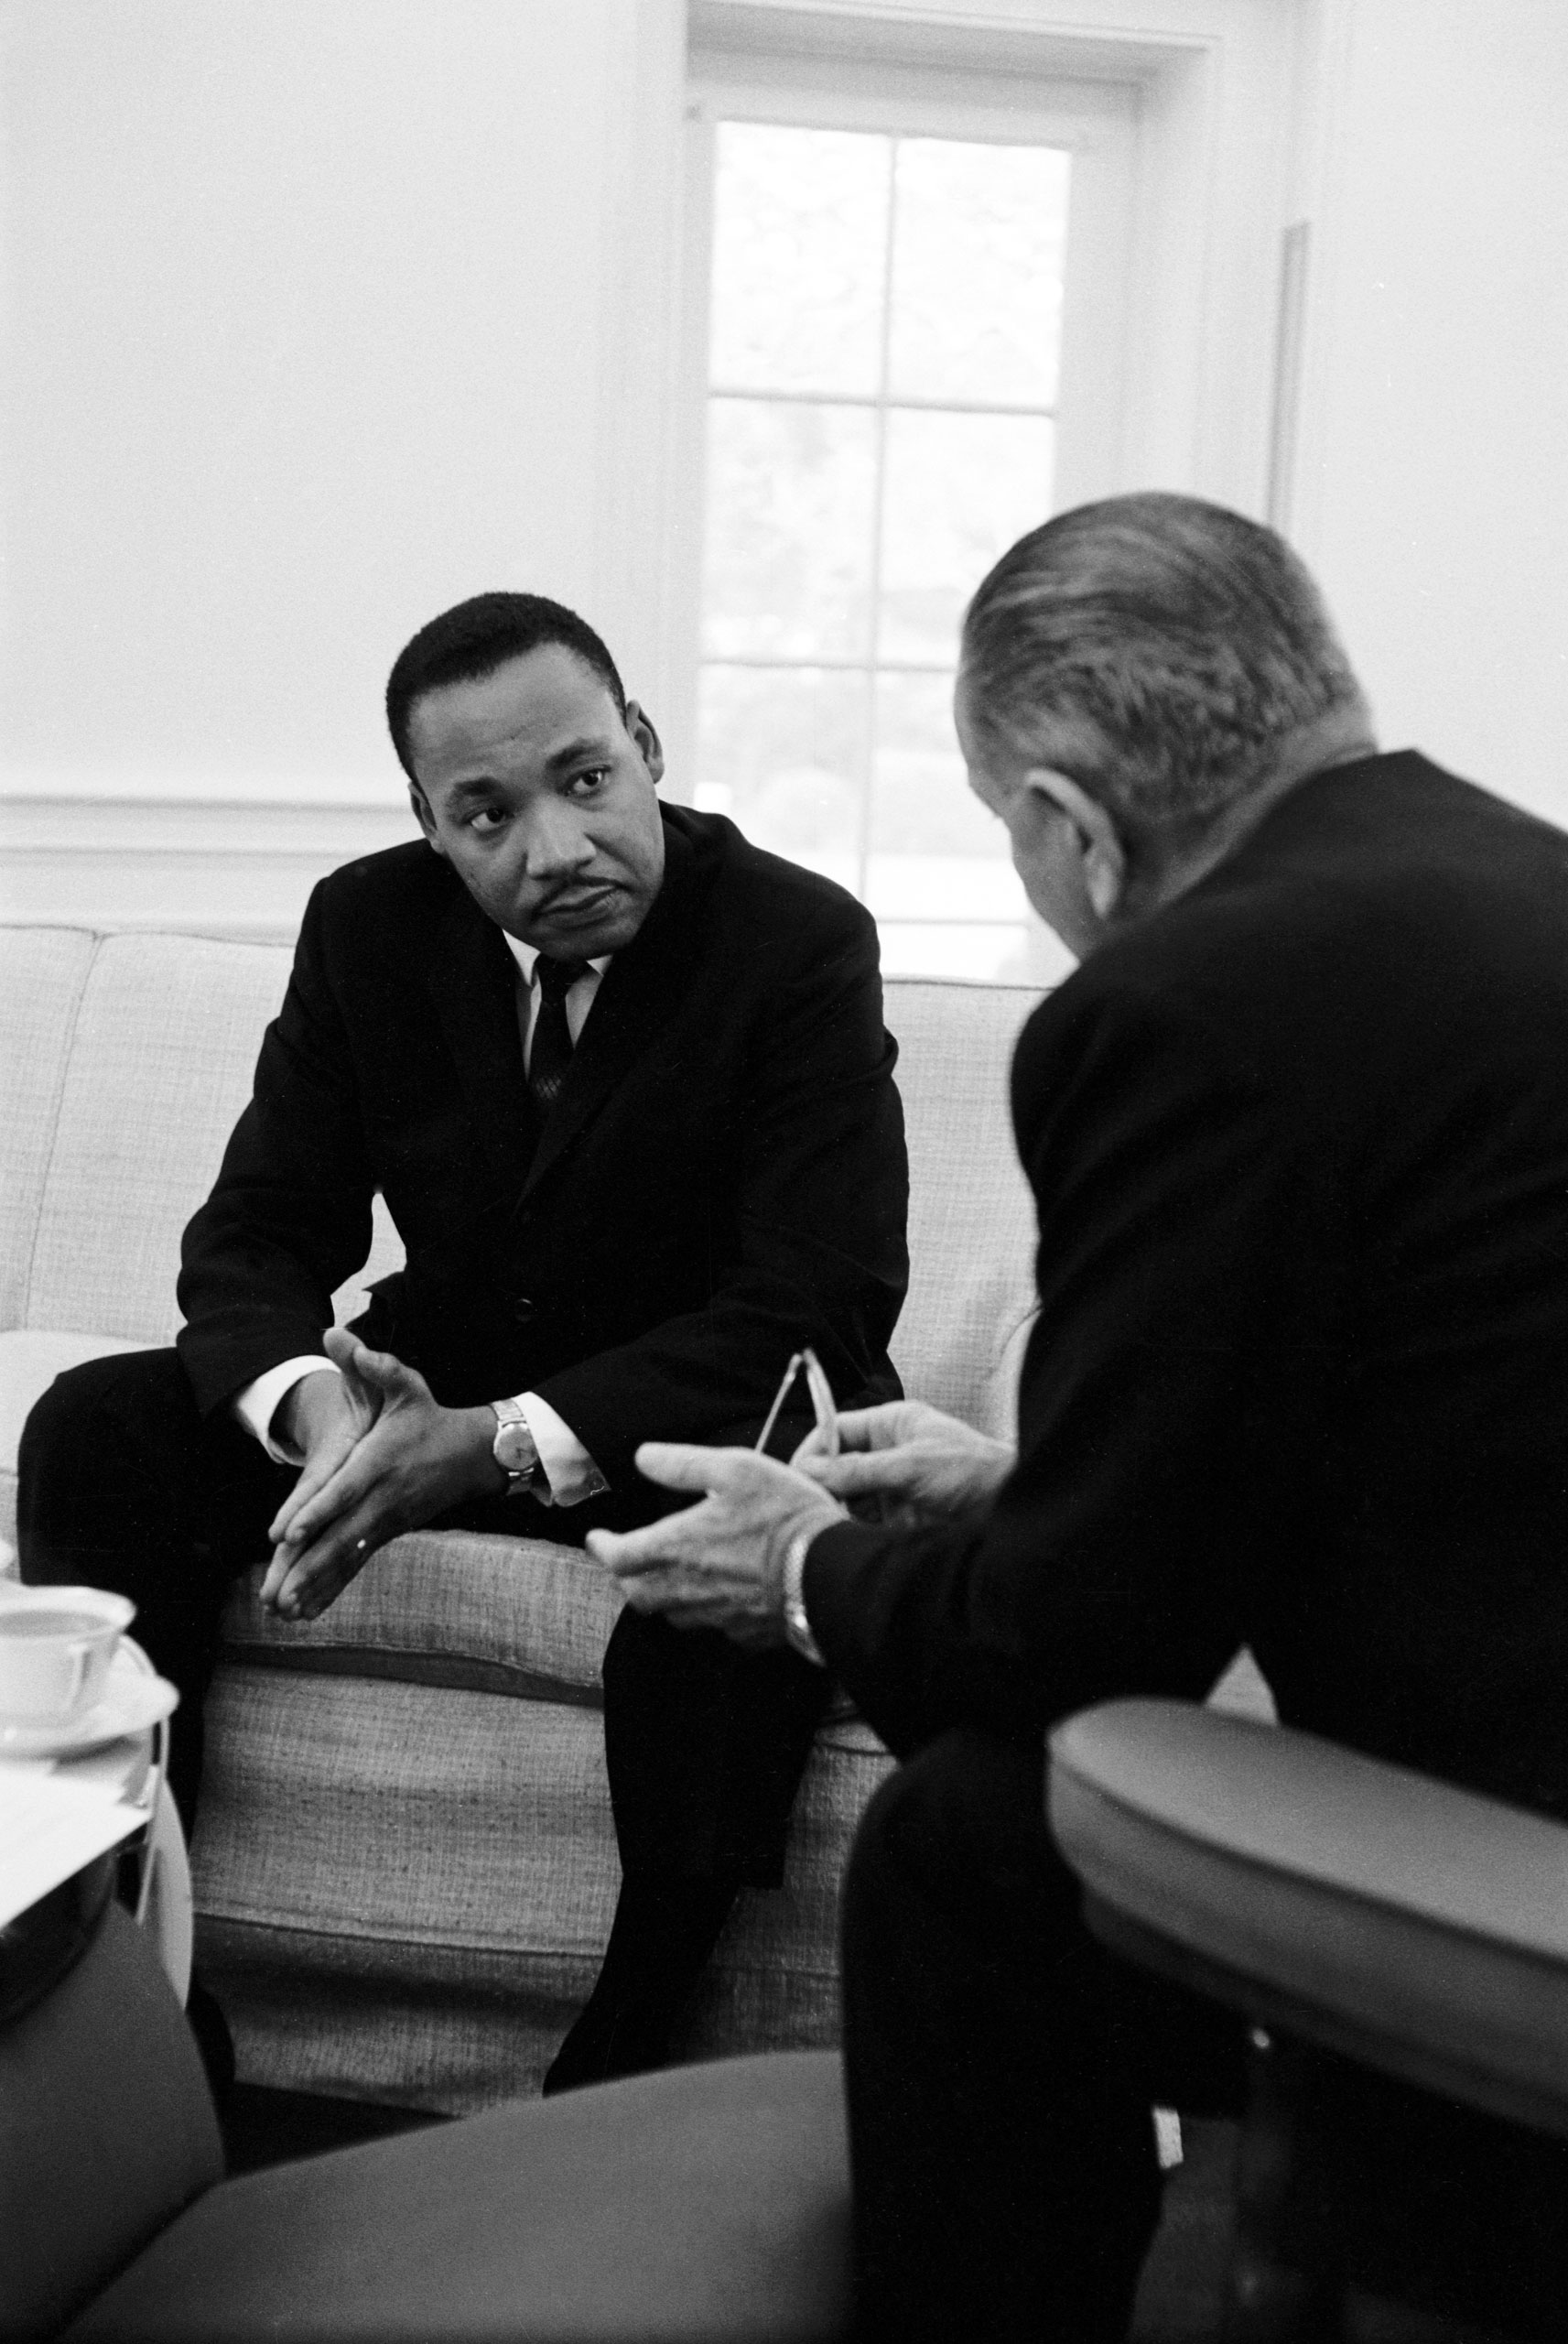 Civil rights leader Dr. Martin Luther King speaking with President Lyndon Johnson during a visit to the White House.